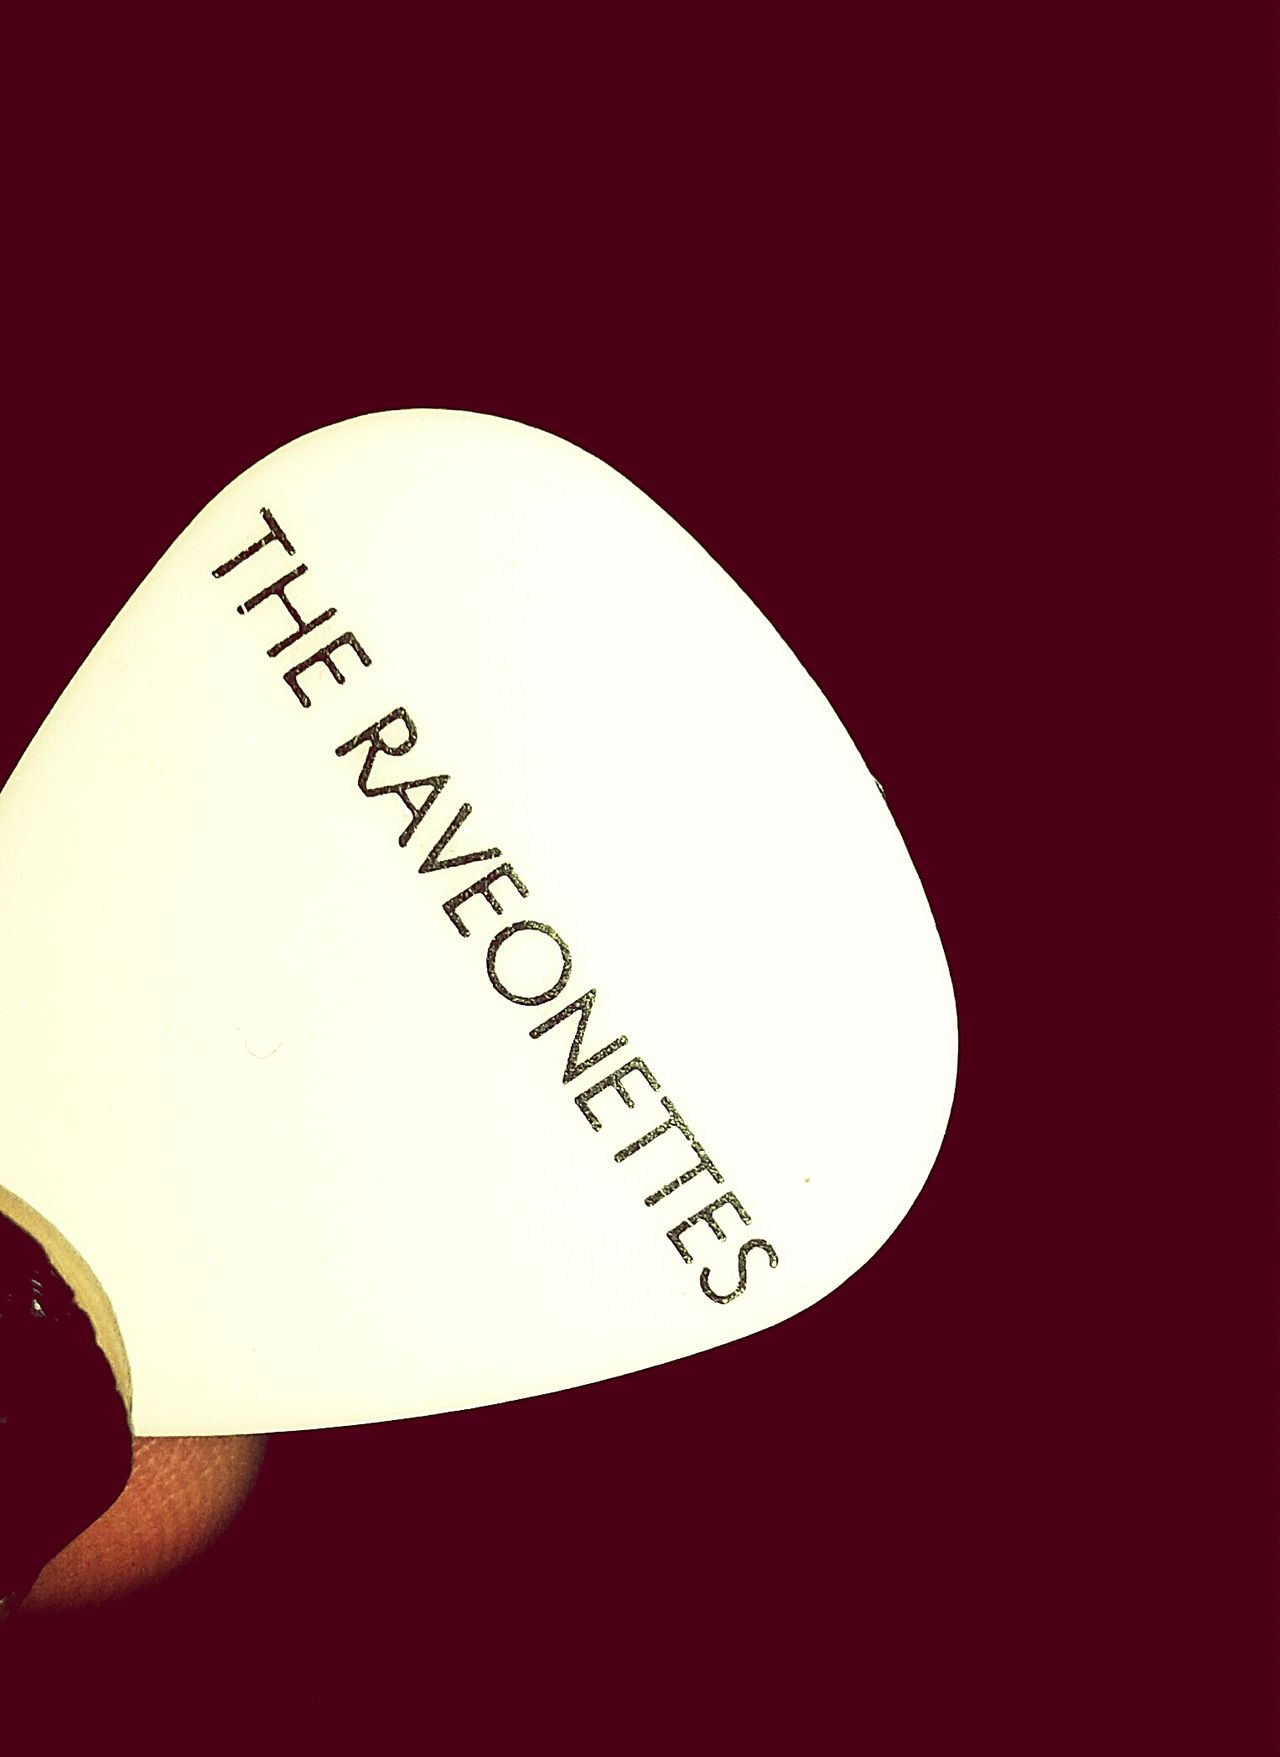 Concert Photography Concerts Guitar Pick The Raveonettes